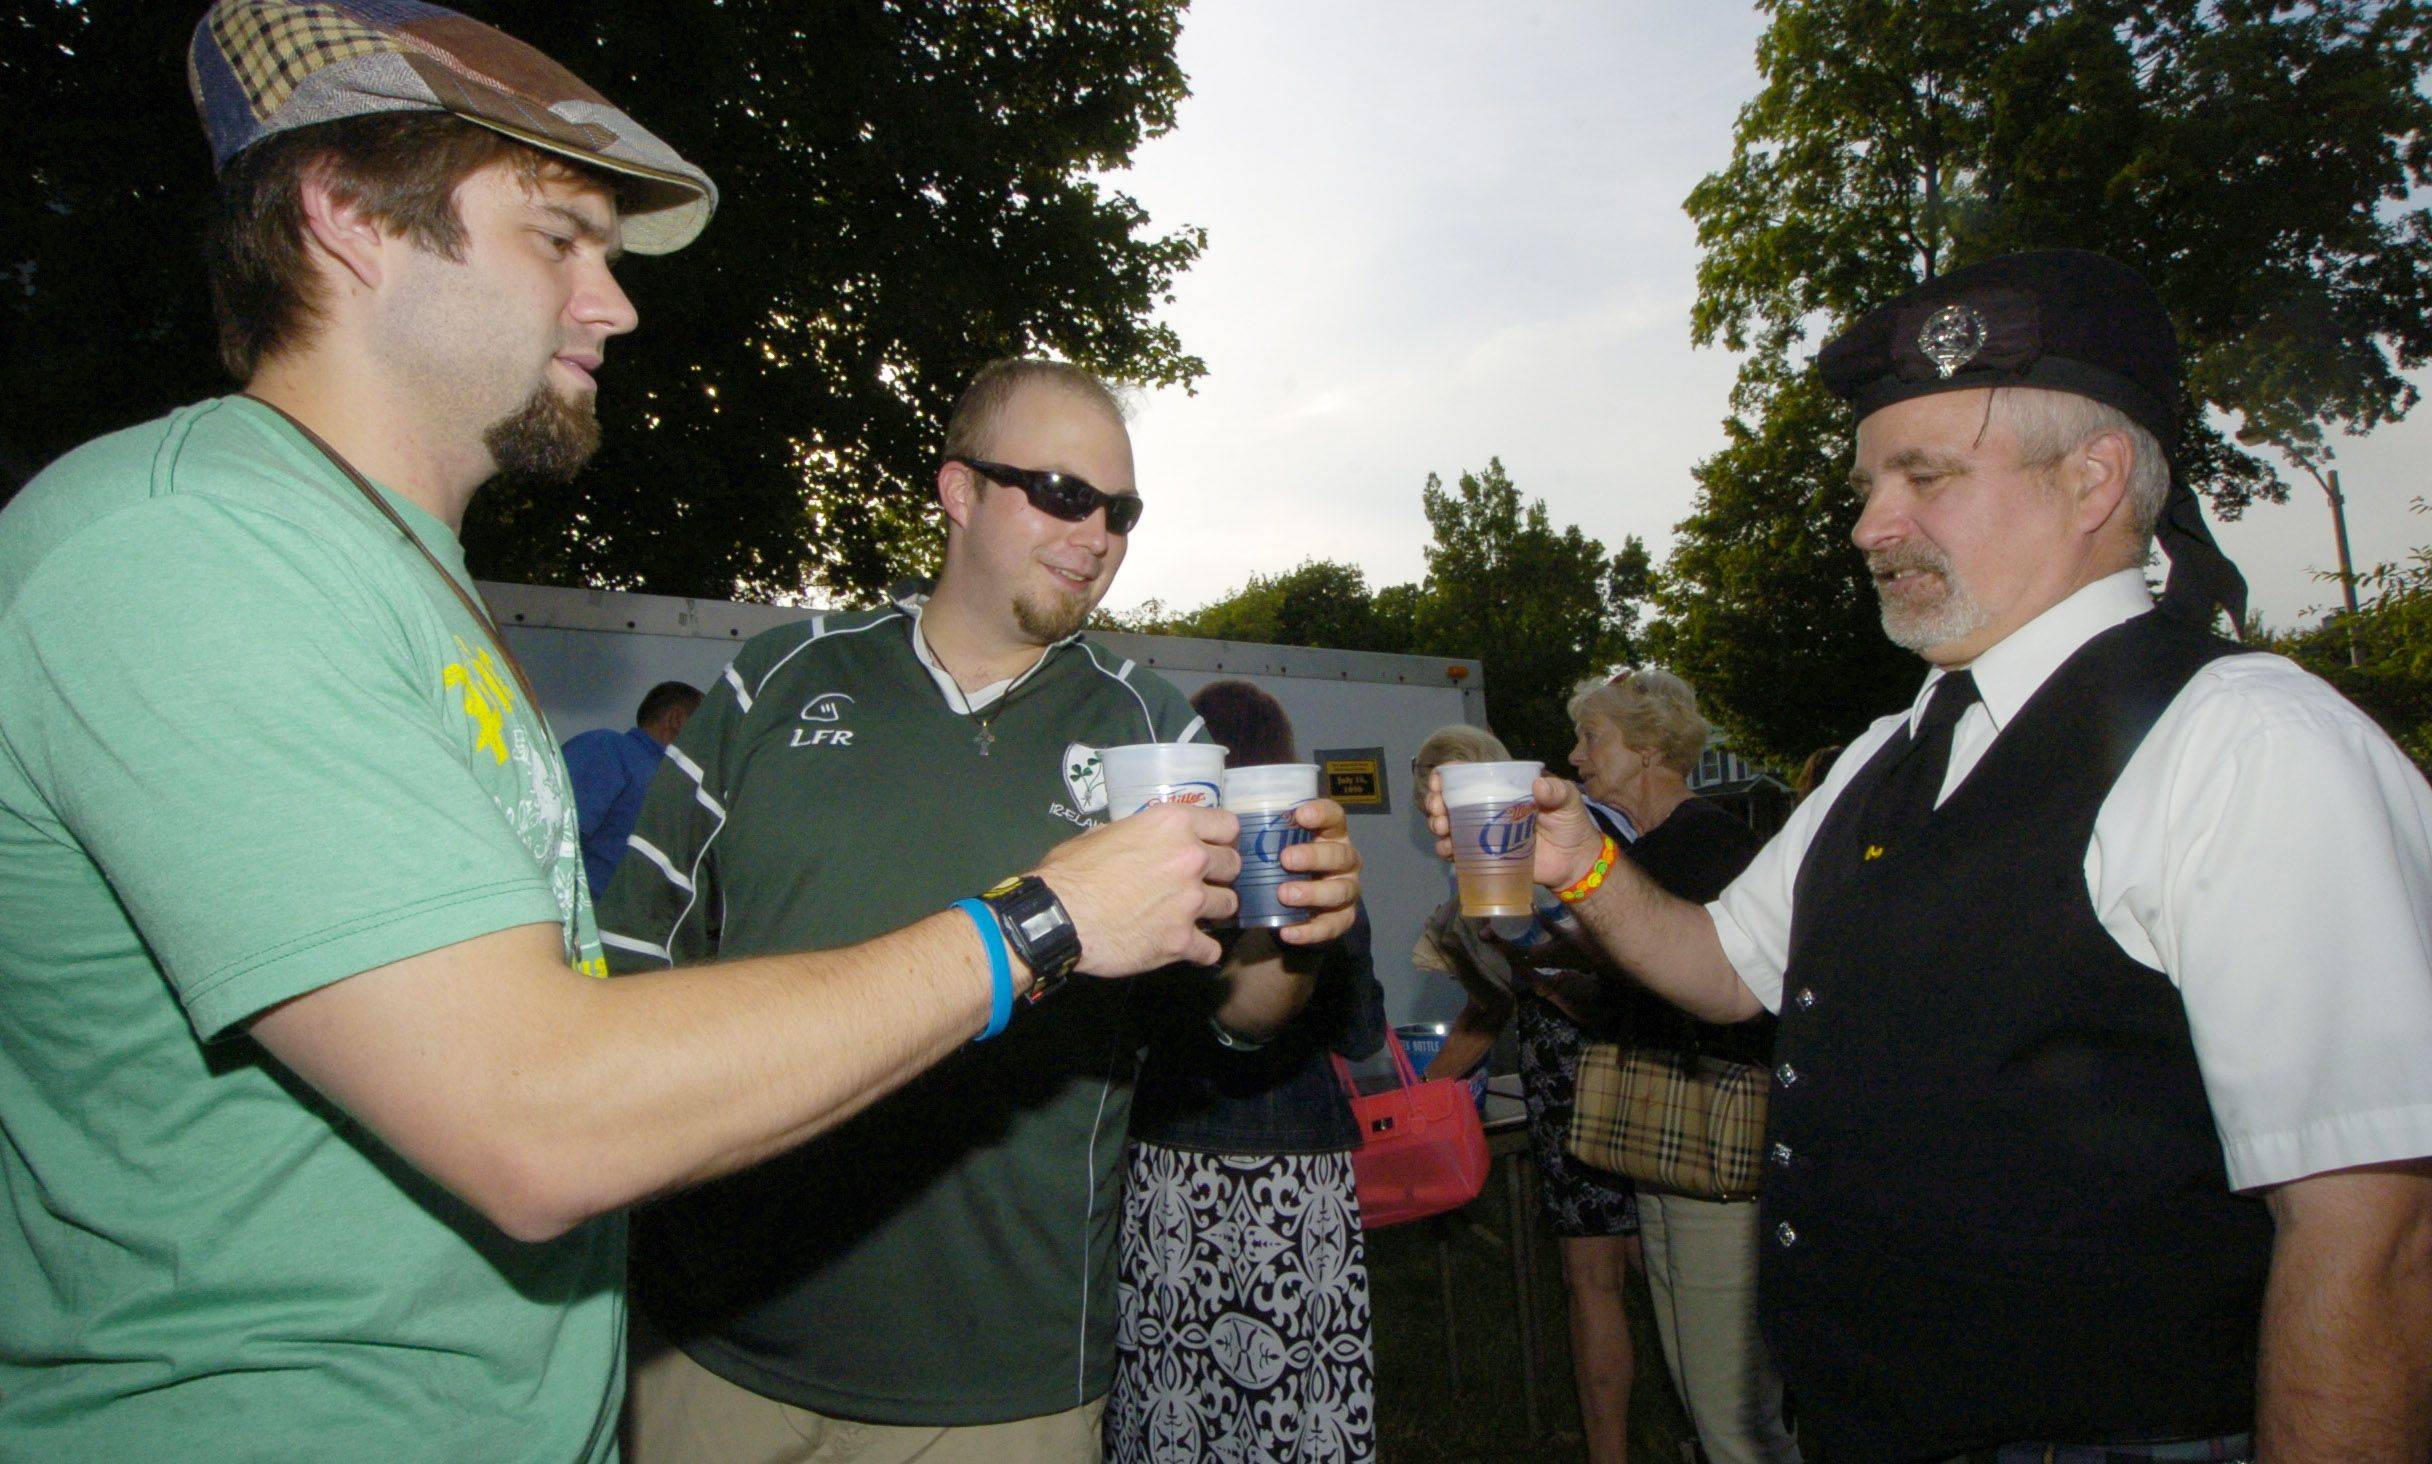 Left to right, Badalamenti and Peter O'Neal, both of Palatine share a toast with Marty Maneck of the Glengale Pipes and Drums of Des Plaines, while having a beer together during Irish Fest in Arlington Heights Friday.